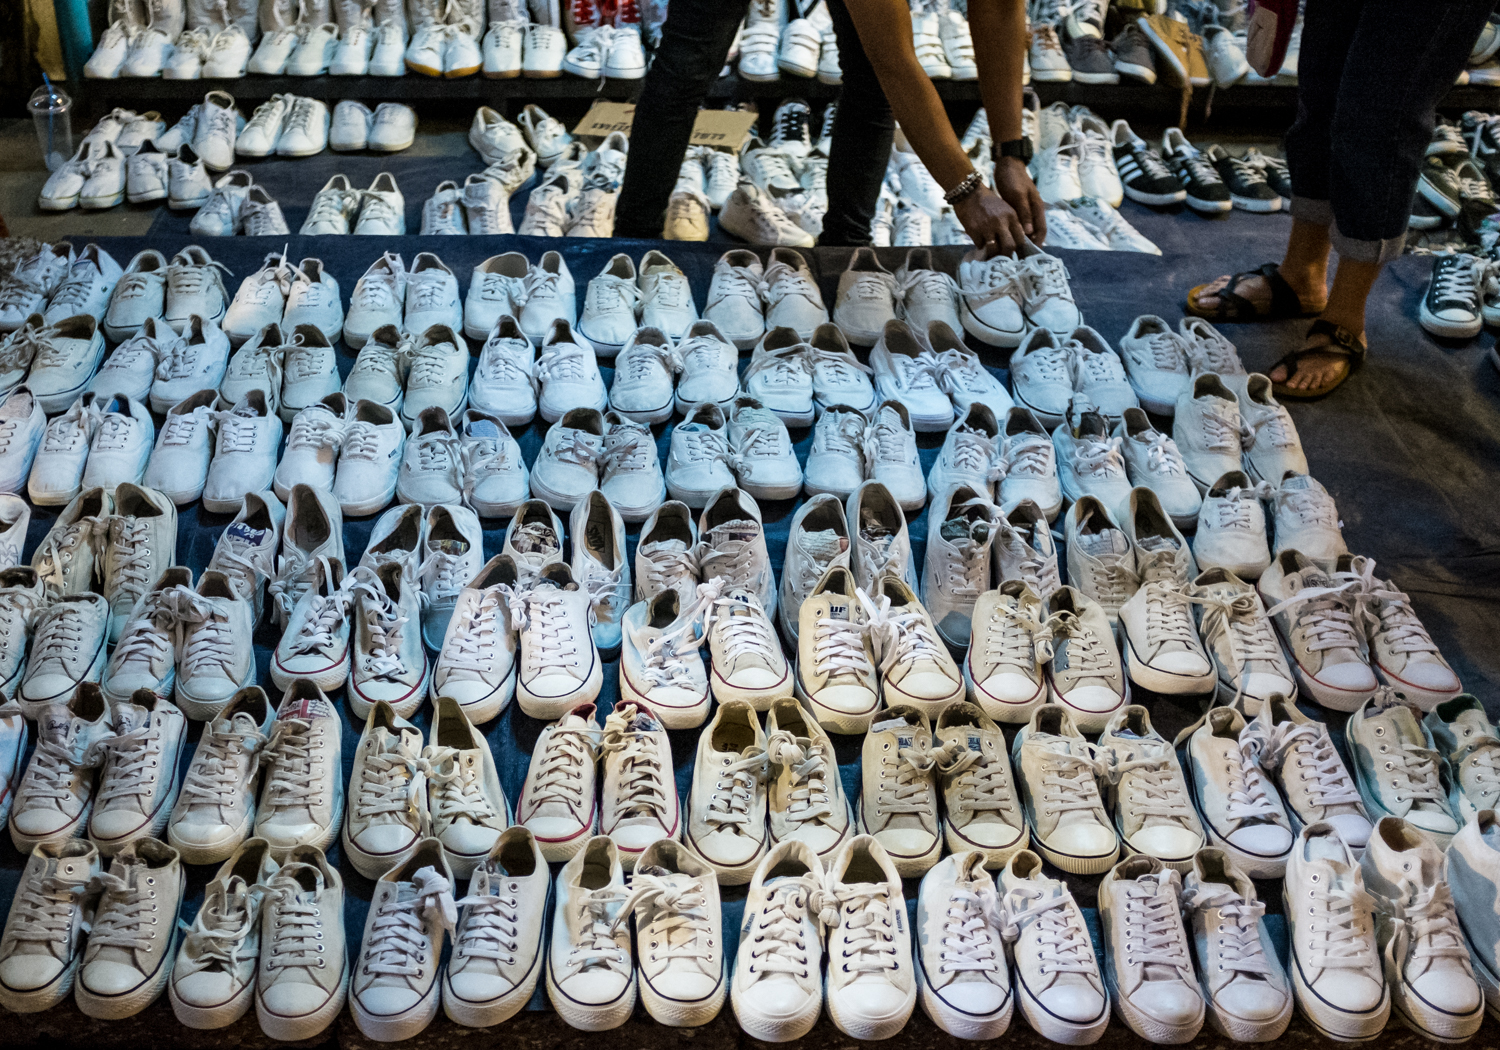 Shoes for sale in Chatuchak market.